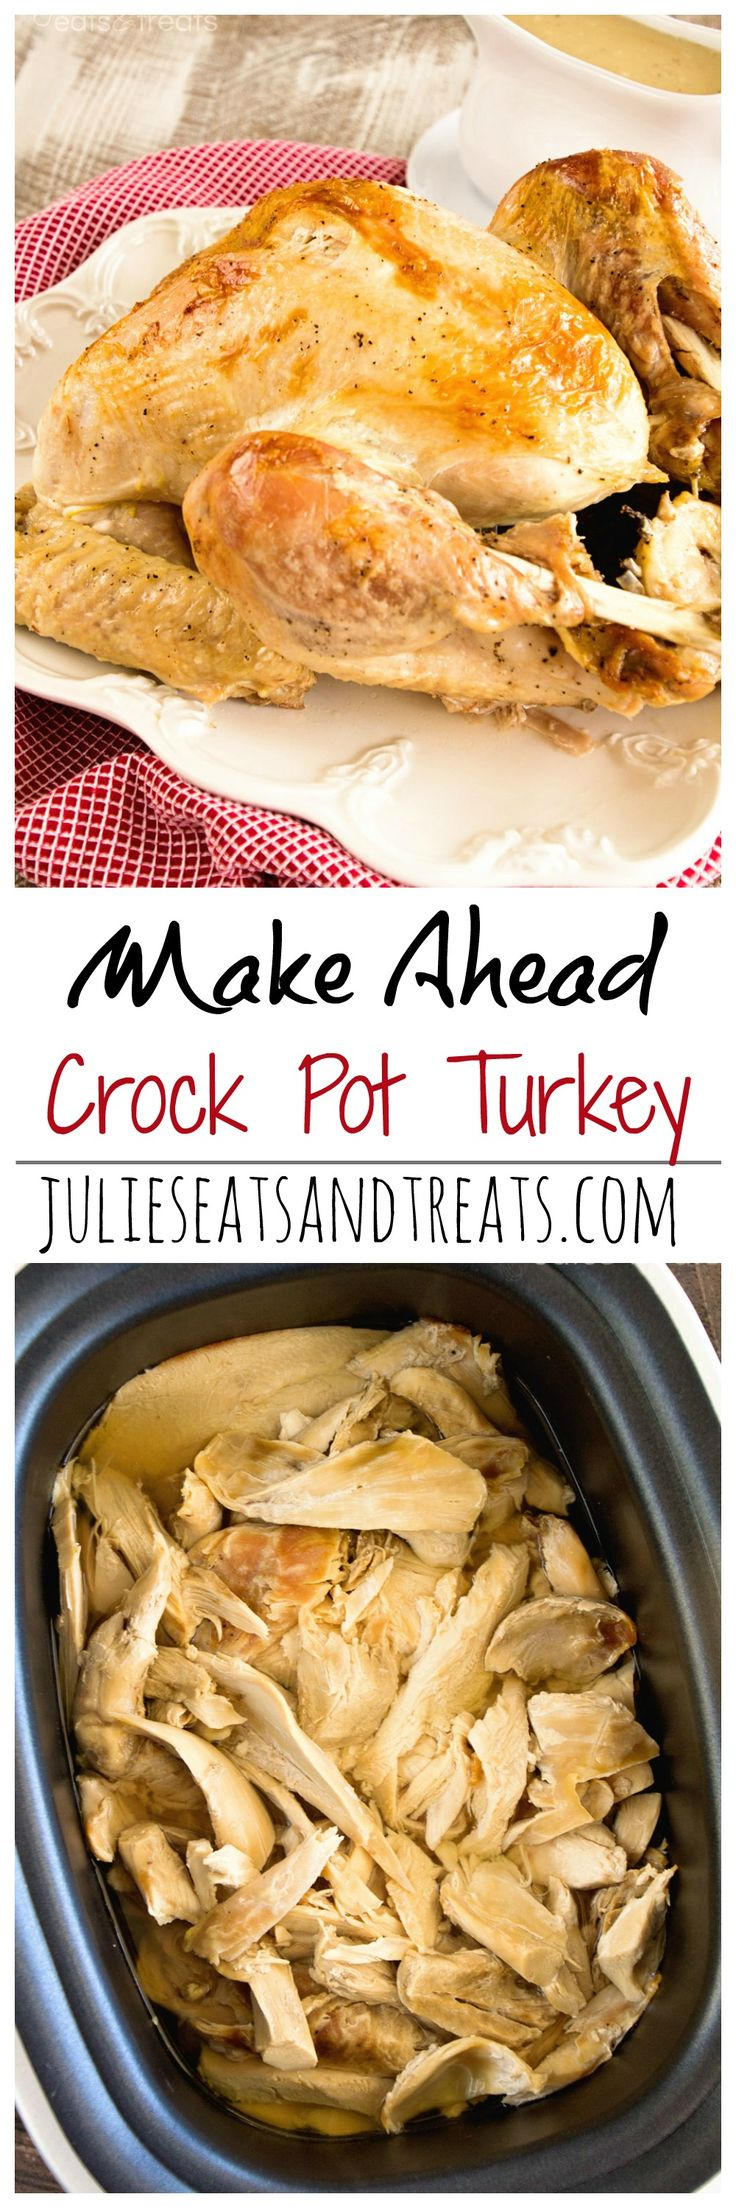 tennis shoes for sale uk Crock Pot Make Ahead Turkey Recipe   The Most Amazing Turkey EVER  Easy  Delicious  Flavorful and Moist Turkey that is Baked in the Oven then Slow Cooked the Day You Serve it  This is the ONLY Turkey Recipe You Need  on MyRecipeMagic com